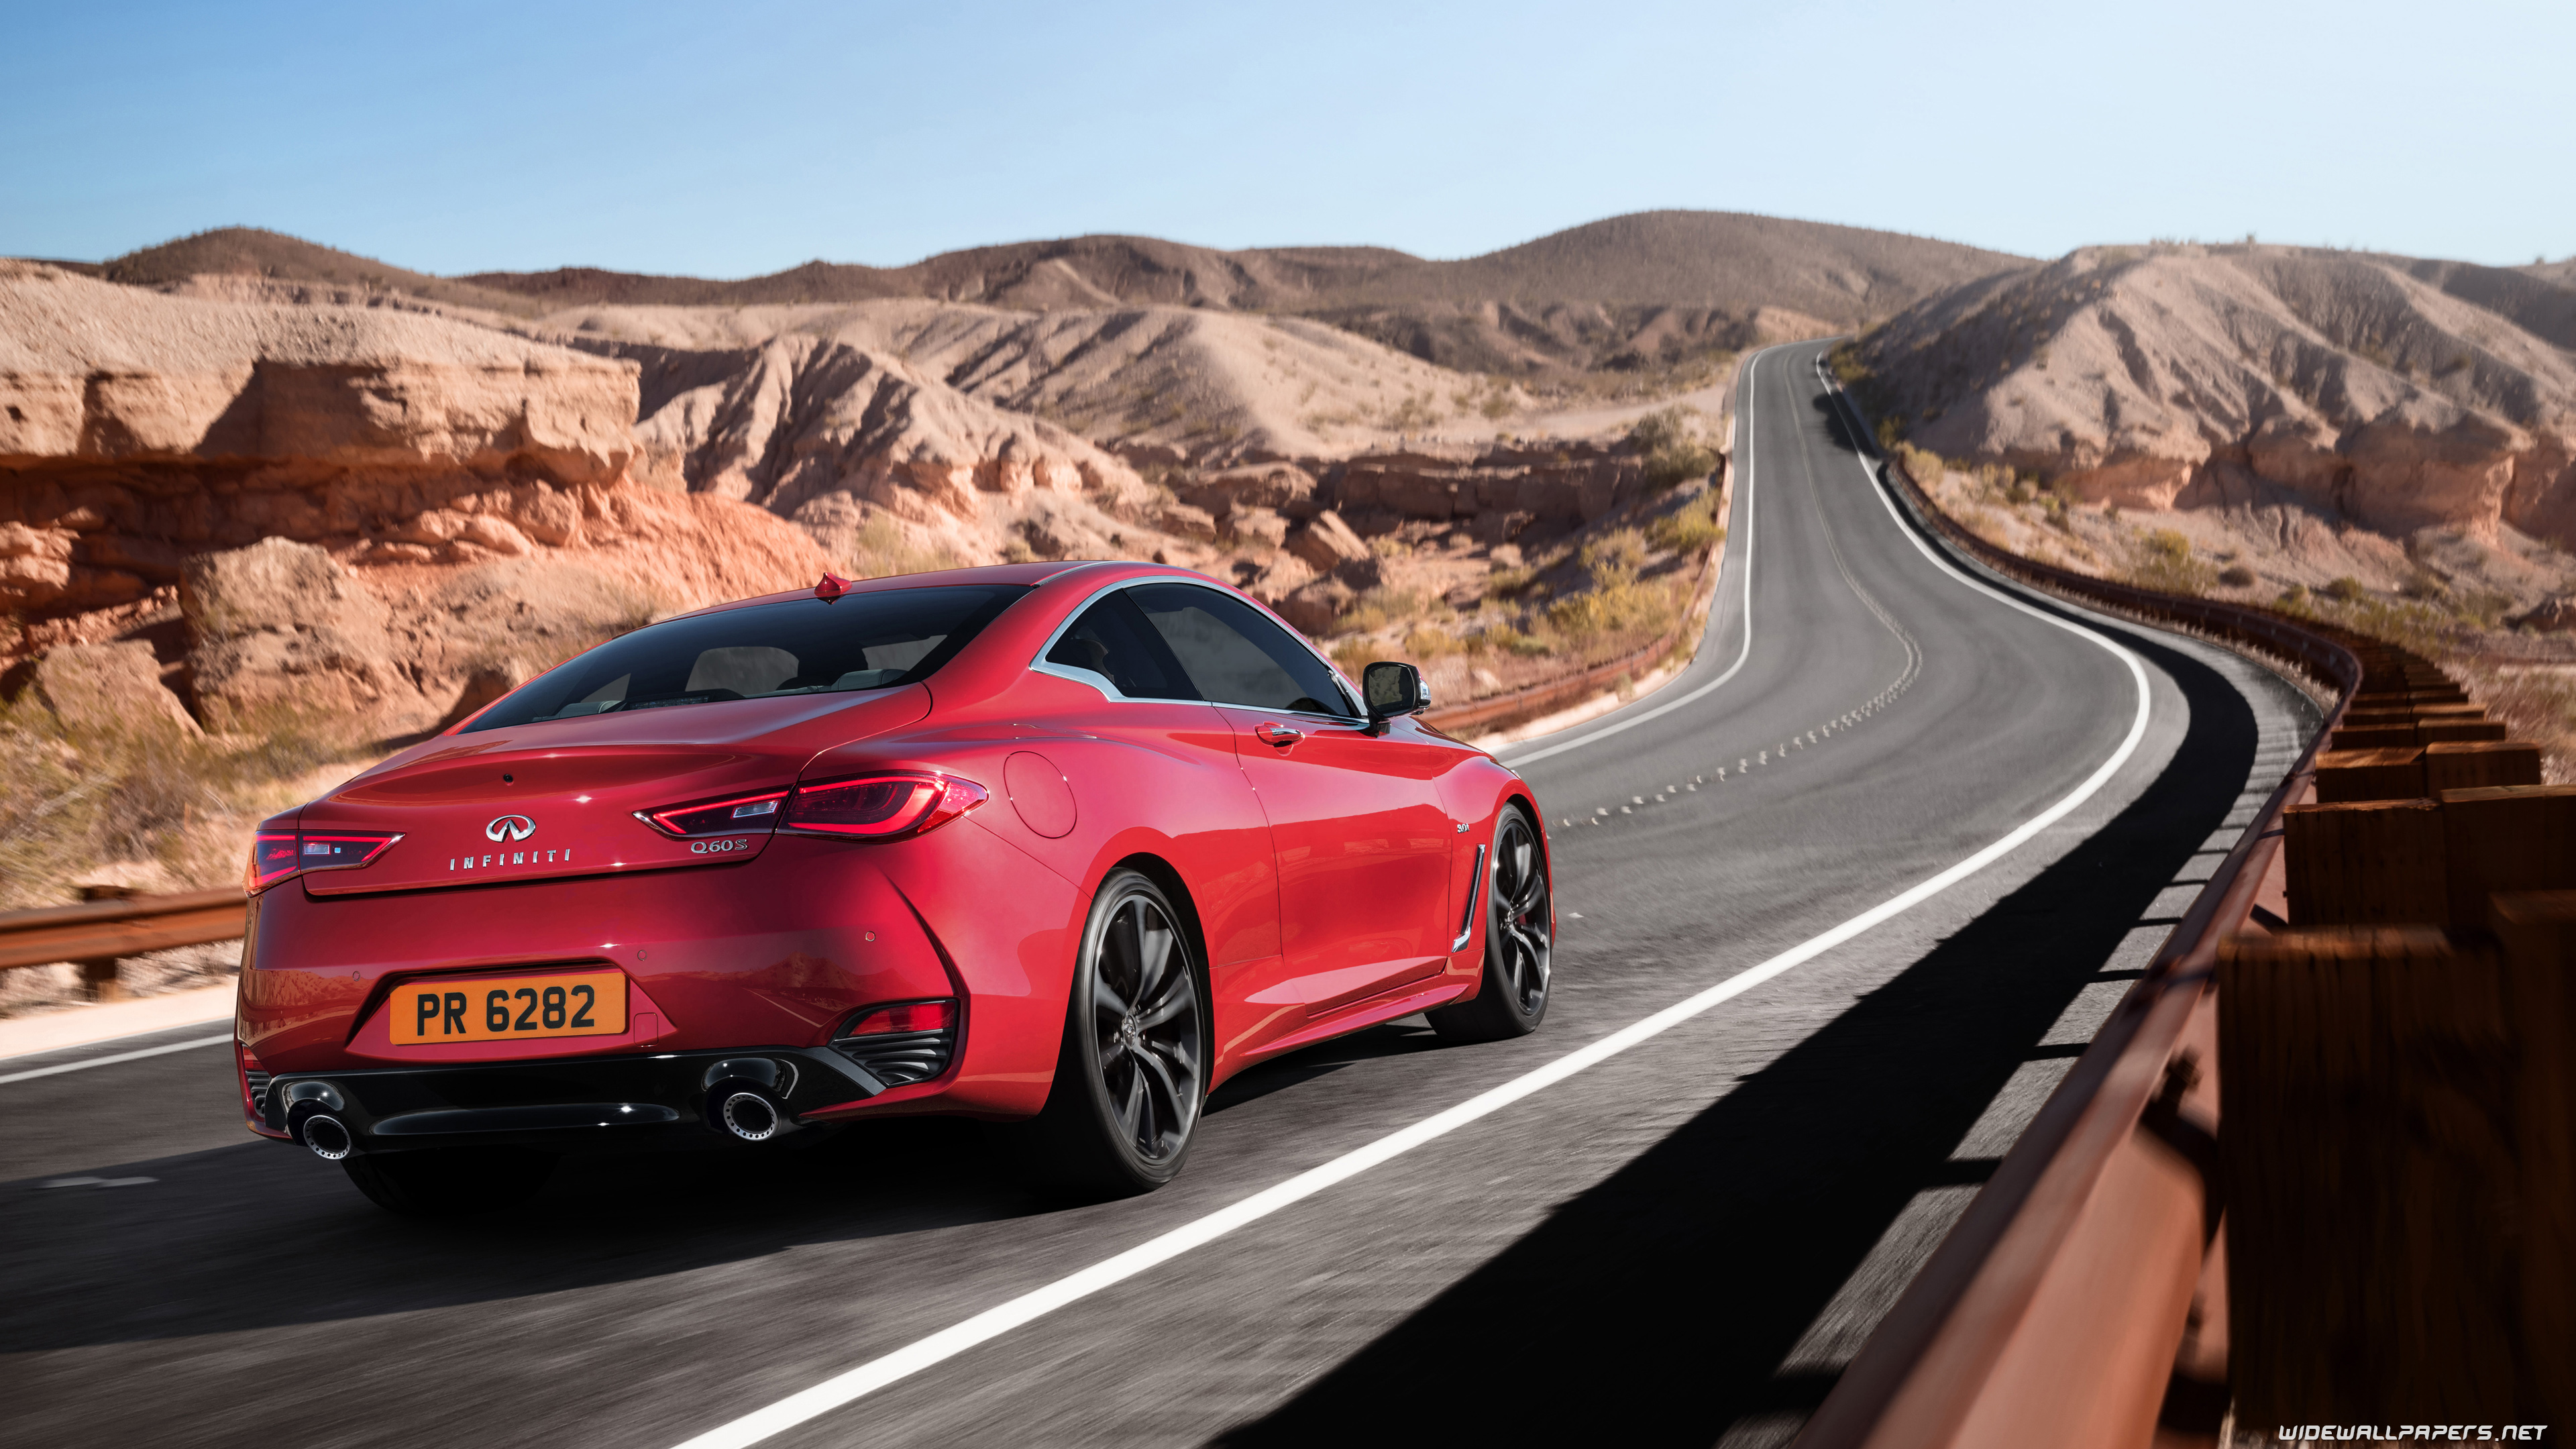 Infiniti Q60 Wallpapers and Background Images   stmednet 3840x2160